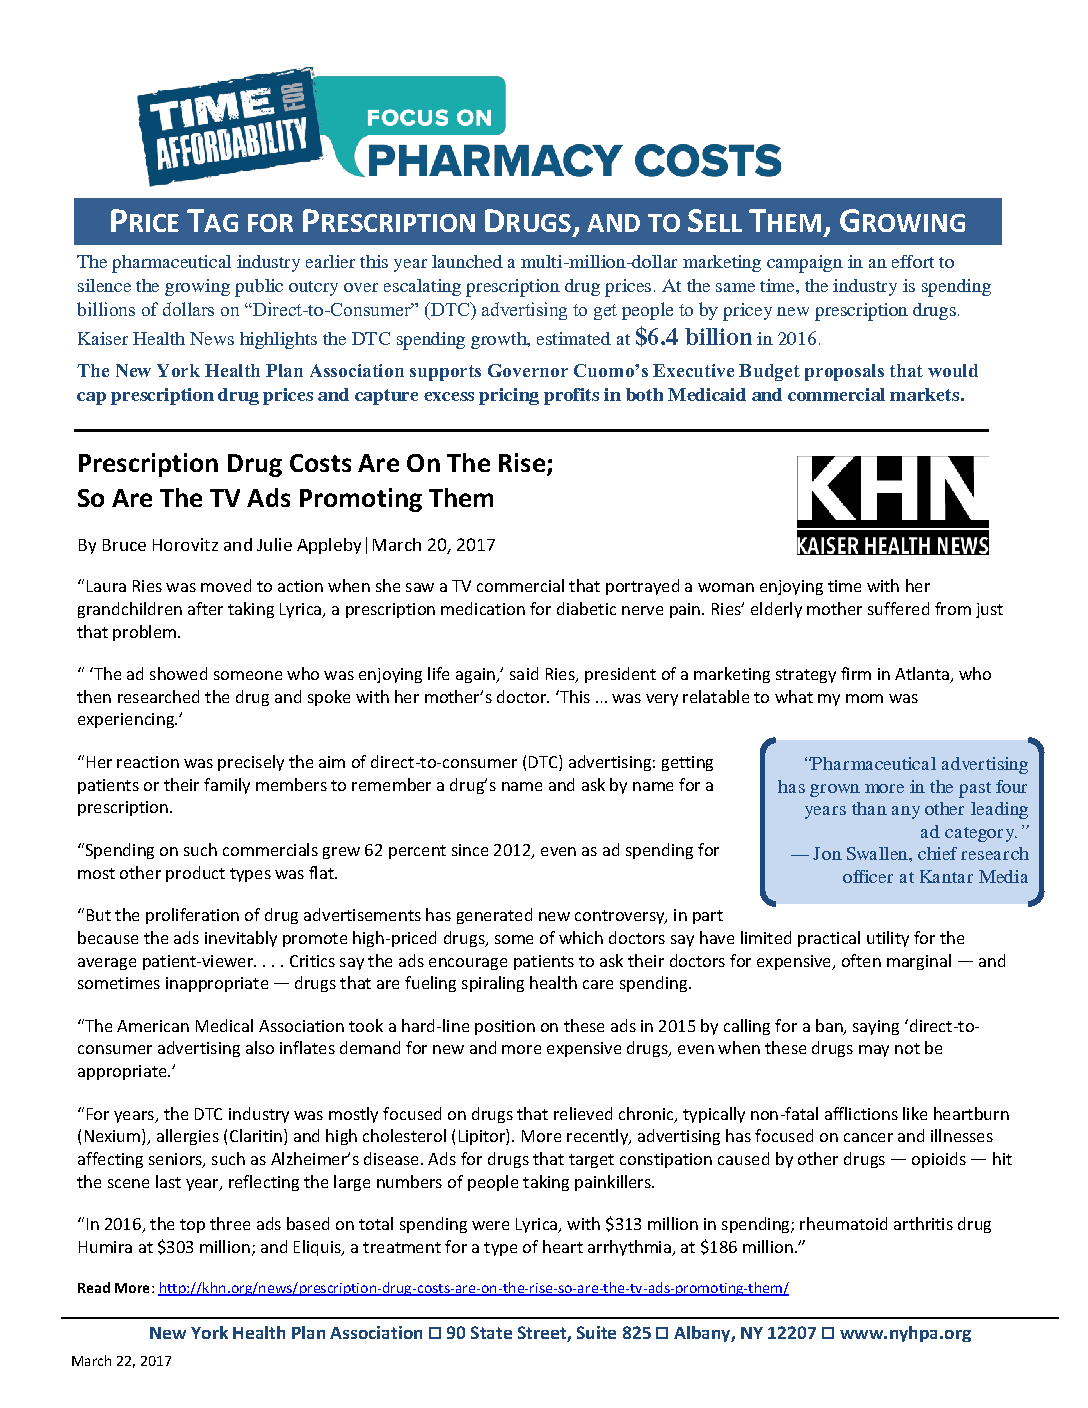 All News Archives - Page 10 of 21 - NYHPA :: The New York